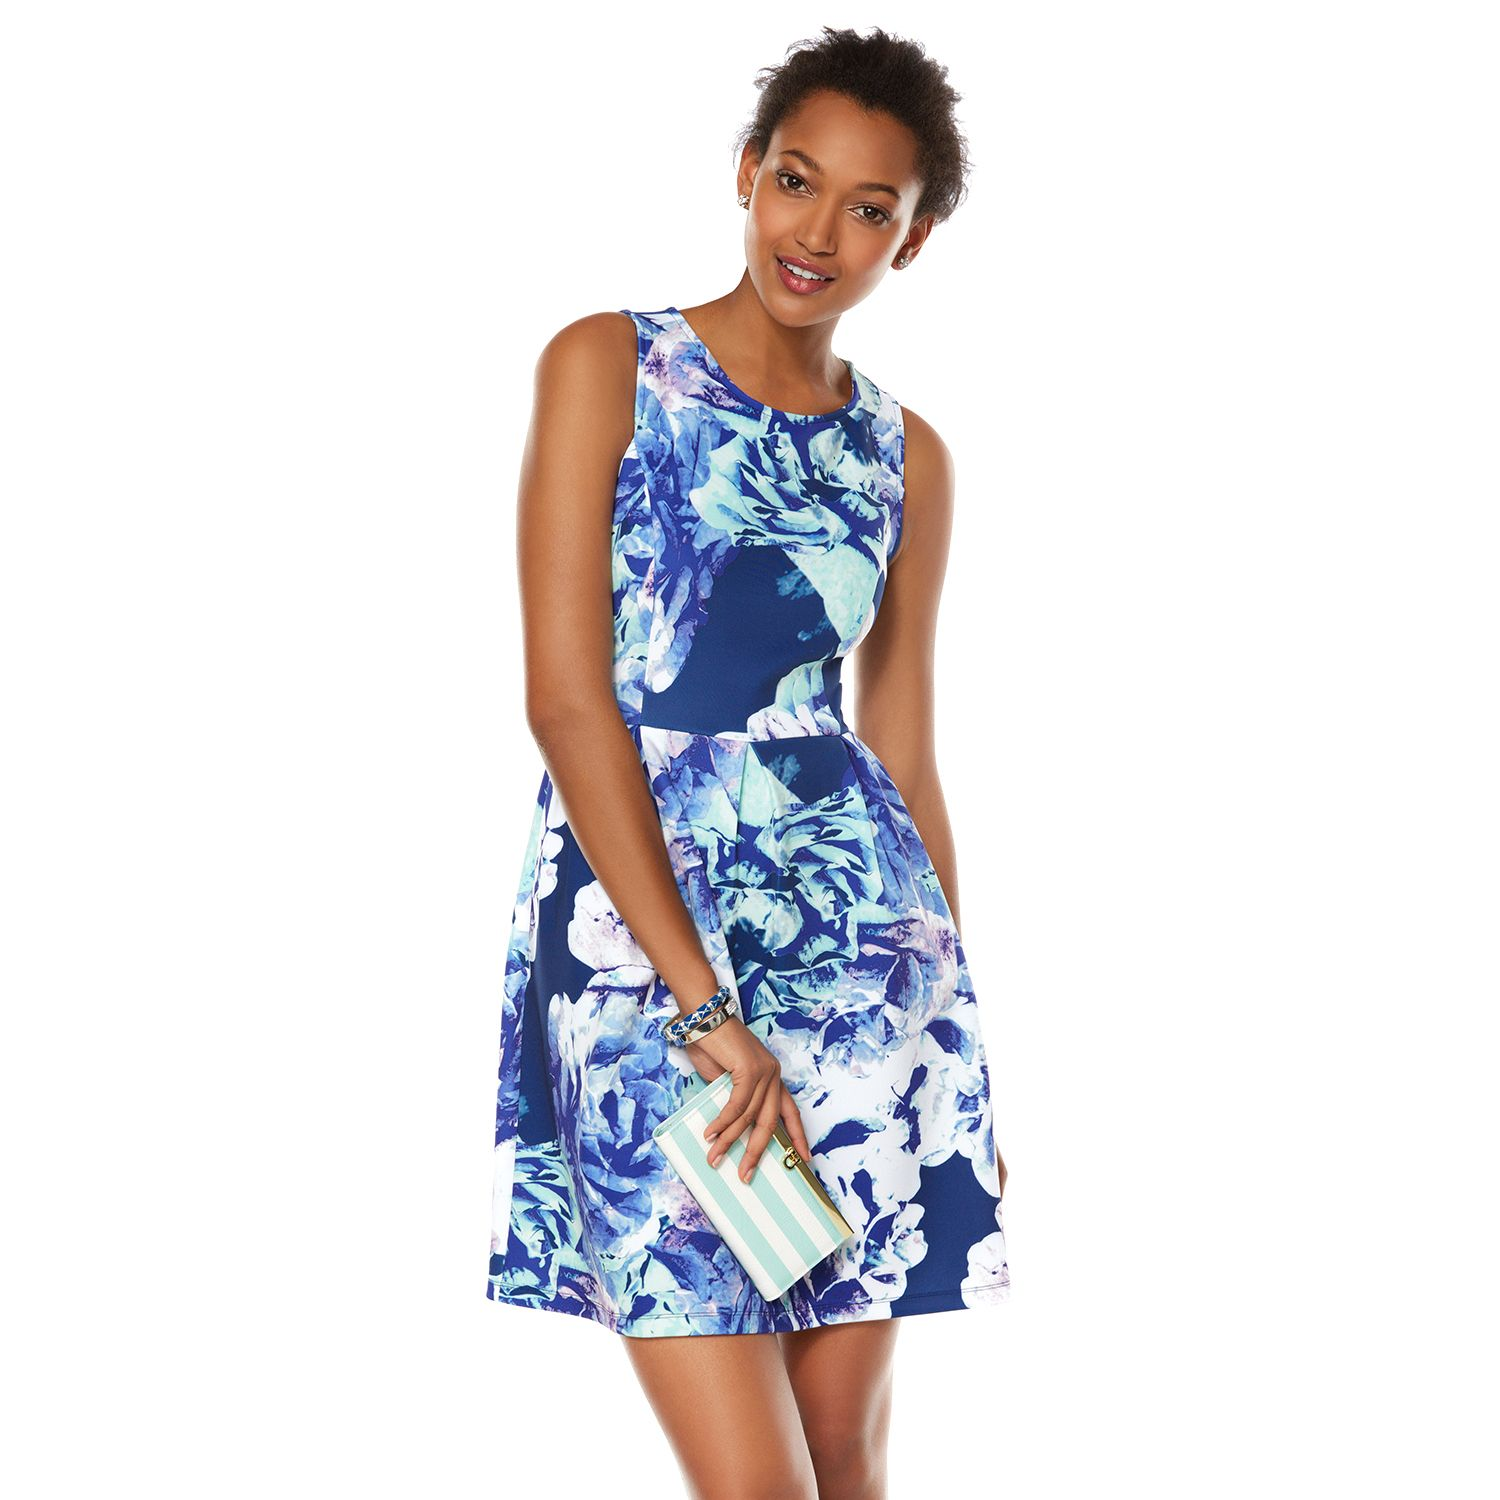 2038658_Rosey_Navy?wid=800&hei=800&op_sharpen=1 kohl's clearance deals, extra off with code,Kohls Apt 9 Womens Clothing